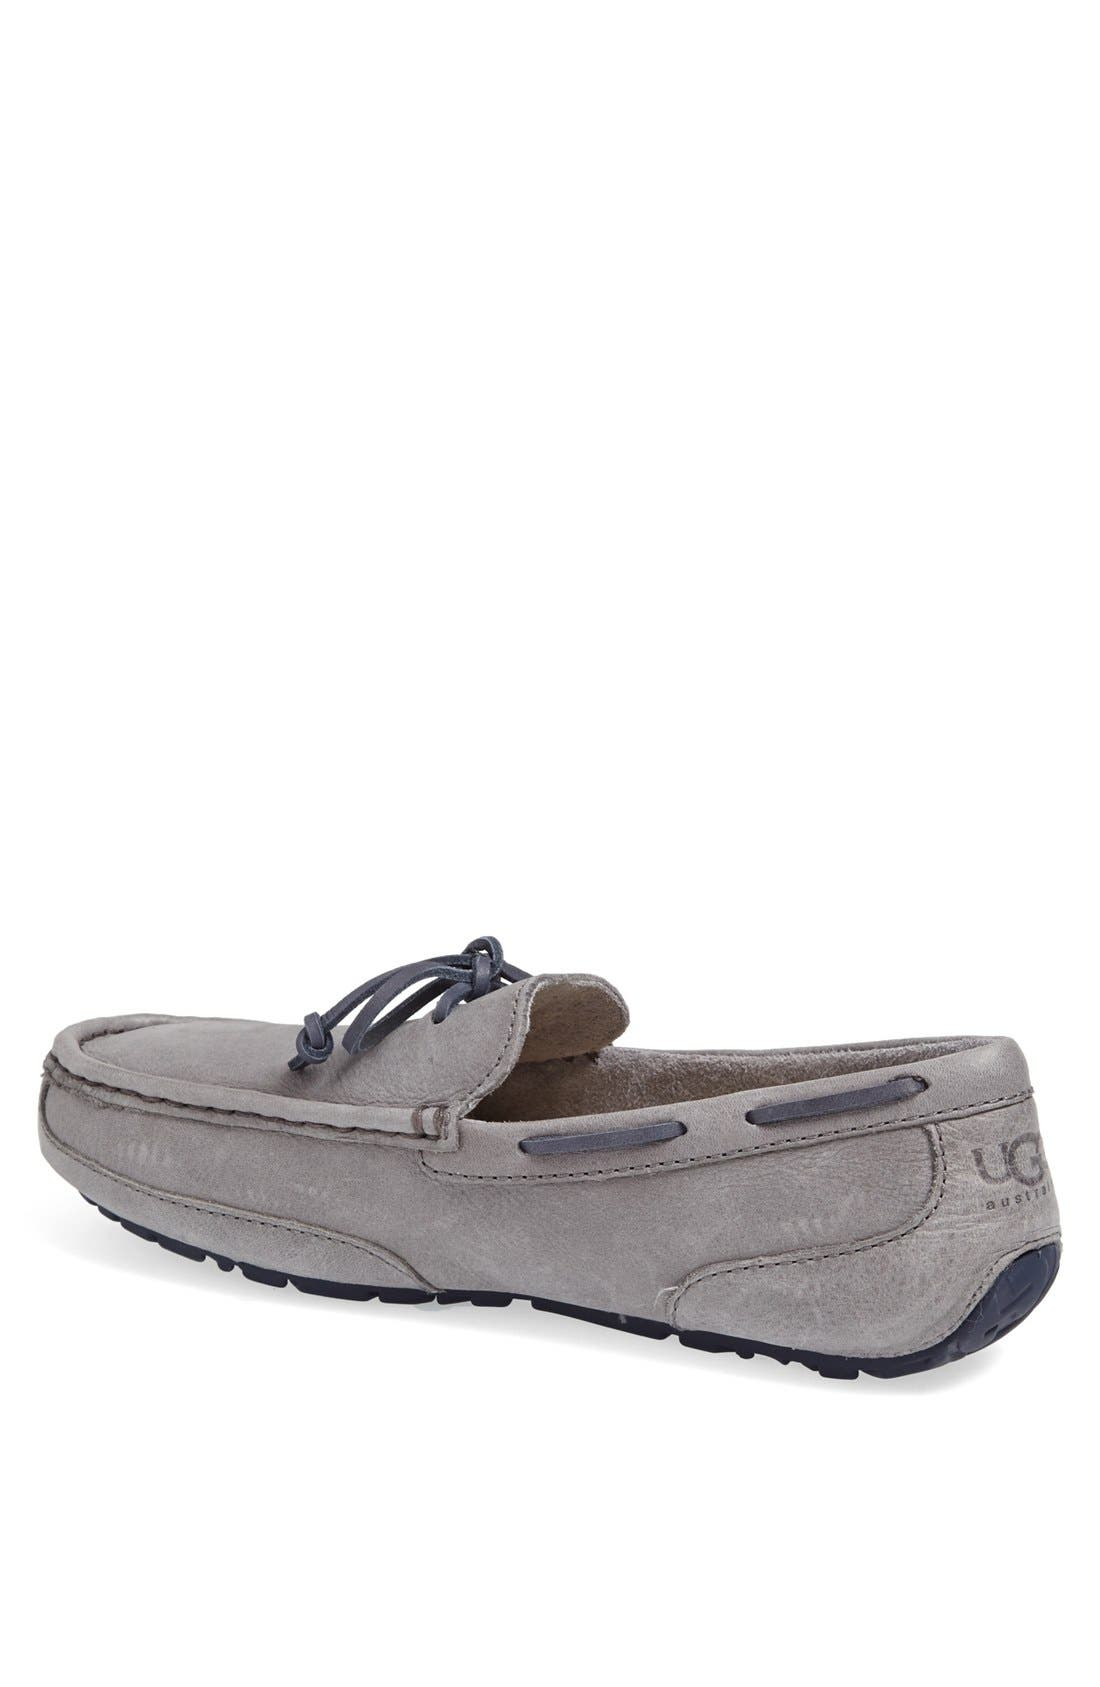 'Chester' Driving Loafer,                             Alternate thumbnail 20, color,